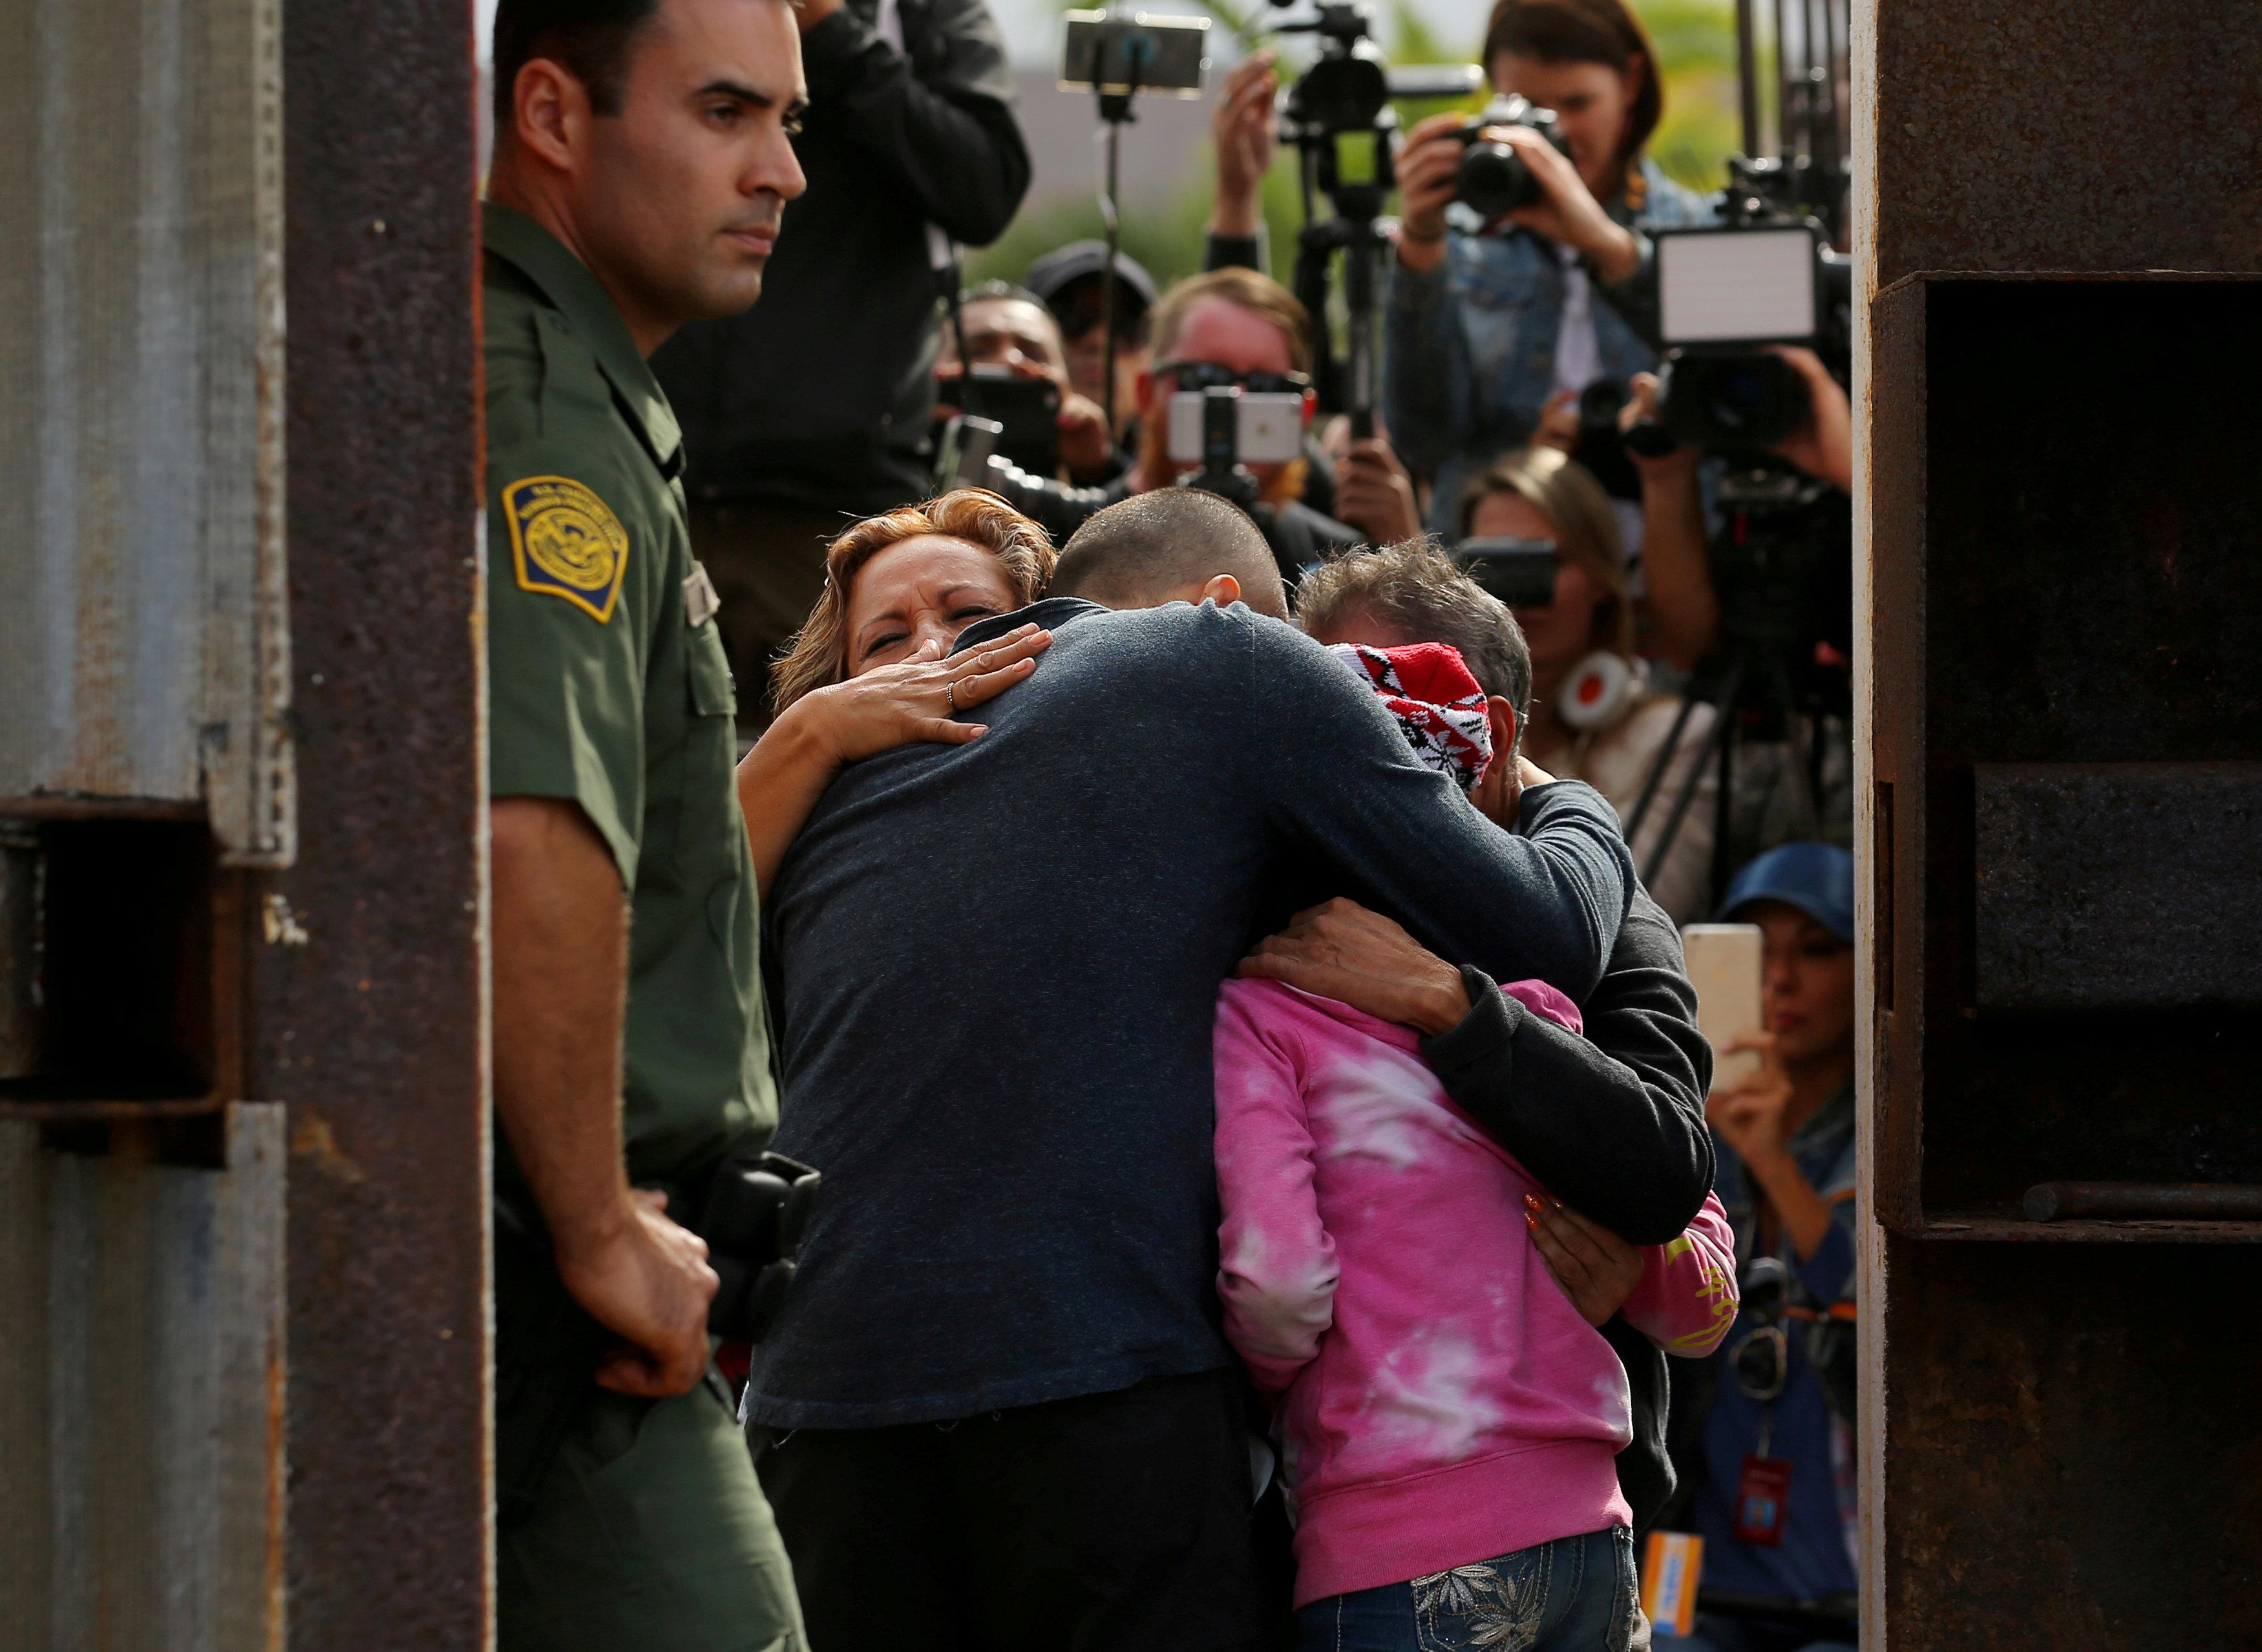 FILE PHOTO - U.S. Border patrol agents stands at an open gate on the fence along the Mexico border to allow Adrian Gonzalez-Morales and his daughter Aileen hug his parents Juan and Martha, as part of Universal Children's Day at the Border Field State Park, California, U.S. on November 19, 2016. REUTERS/Mike Blake/File Photo